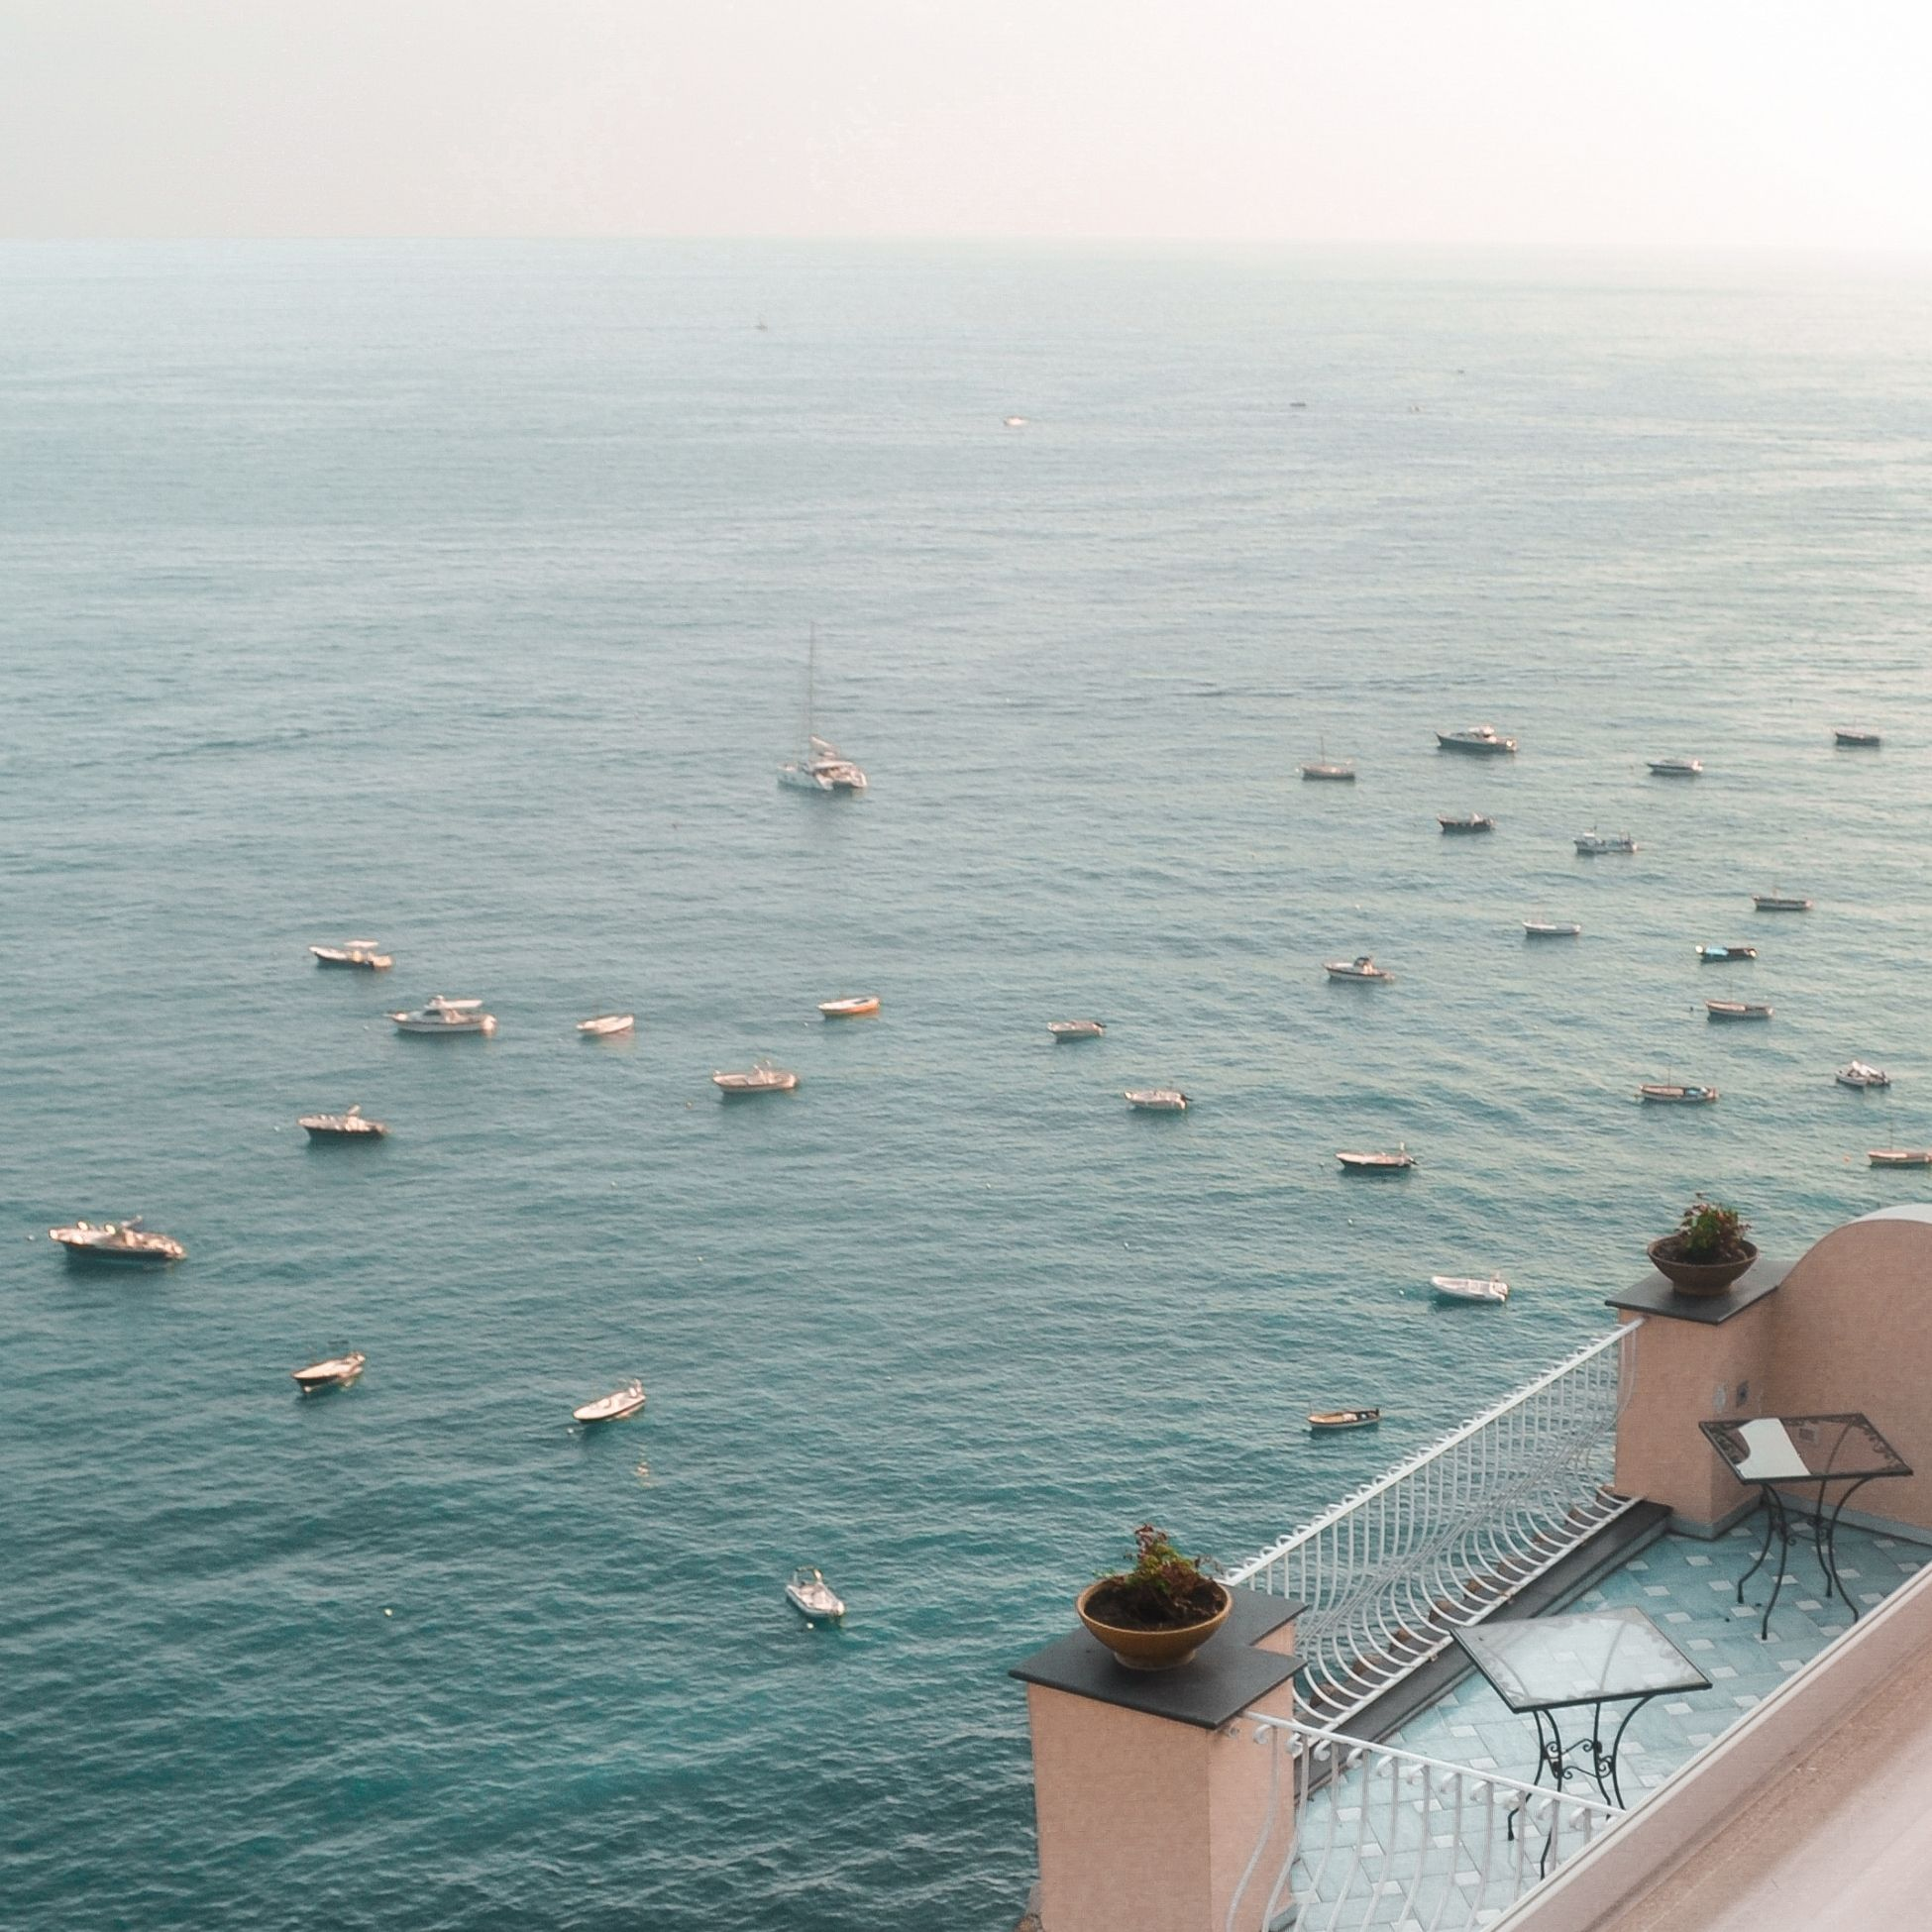 a seaside view from a balcony looking at many small sailboats below